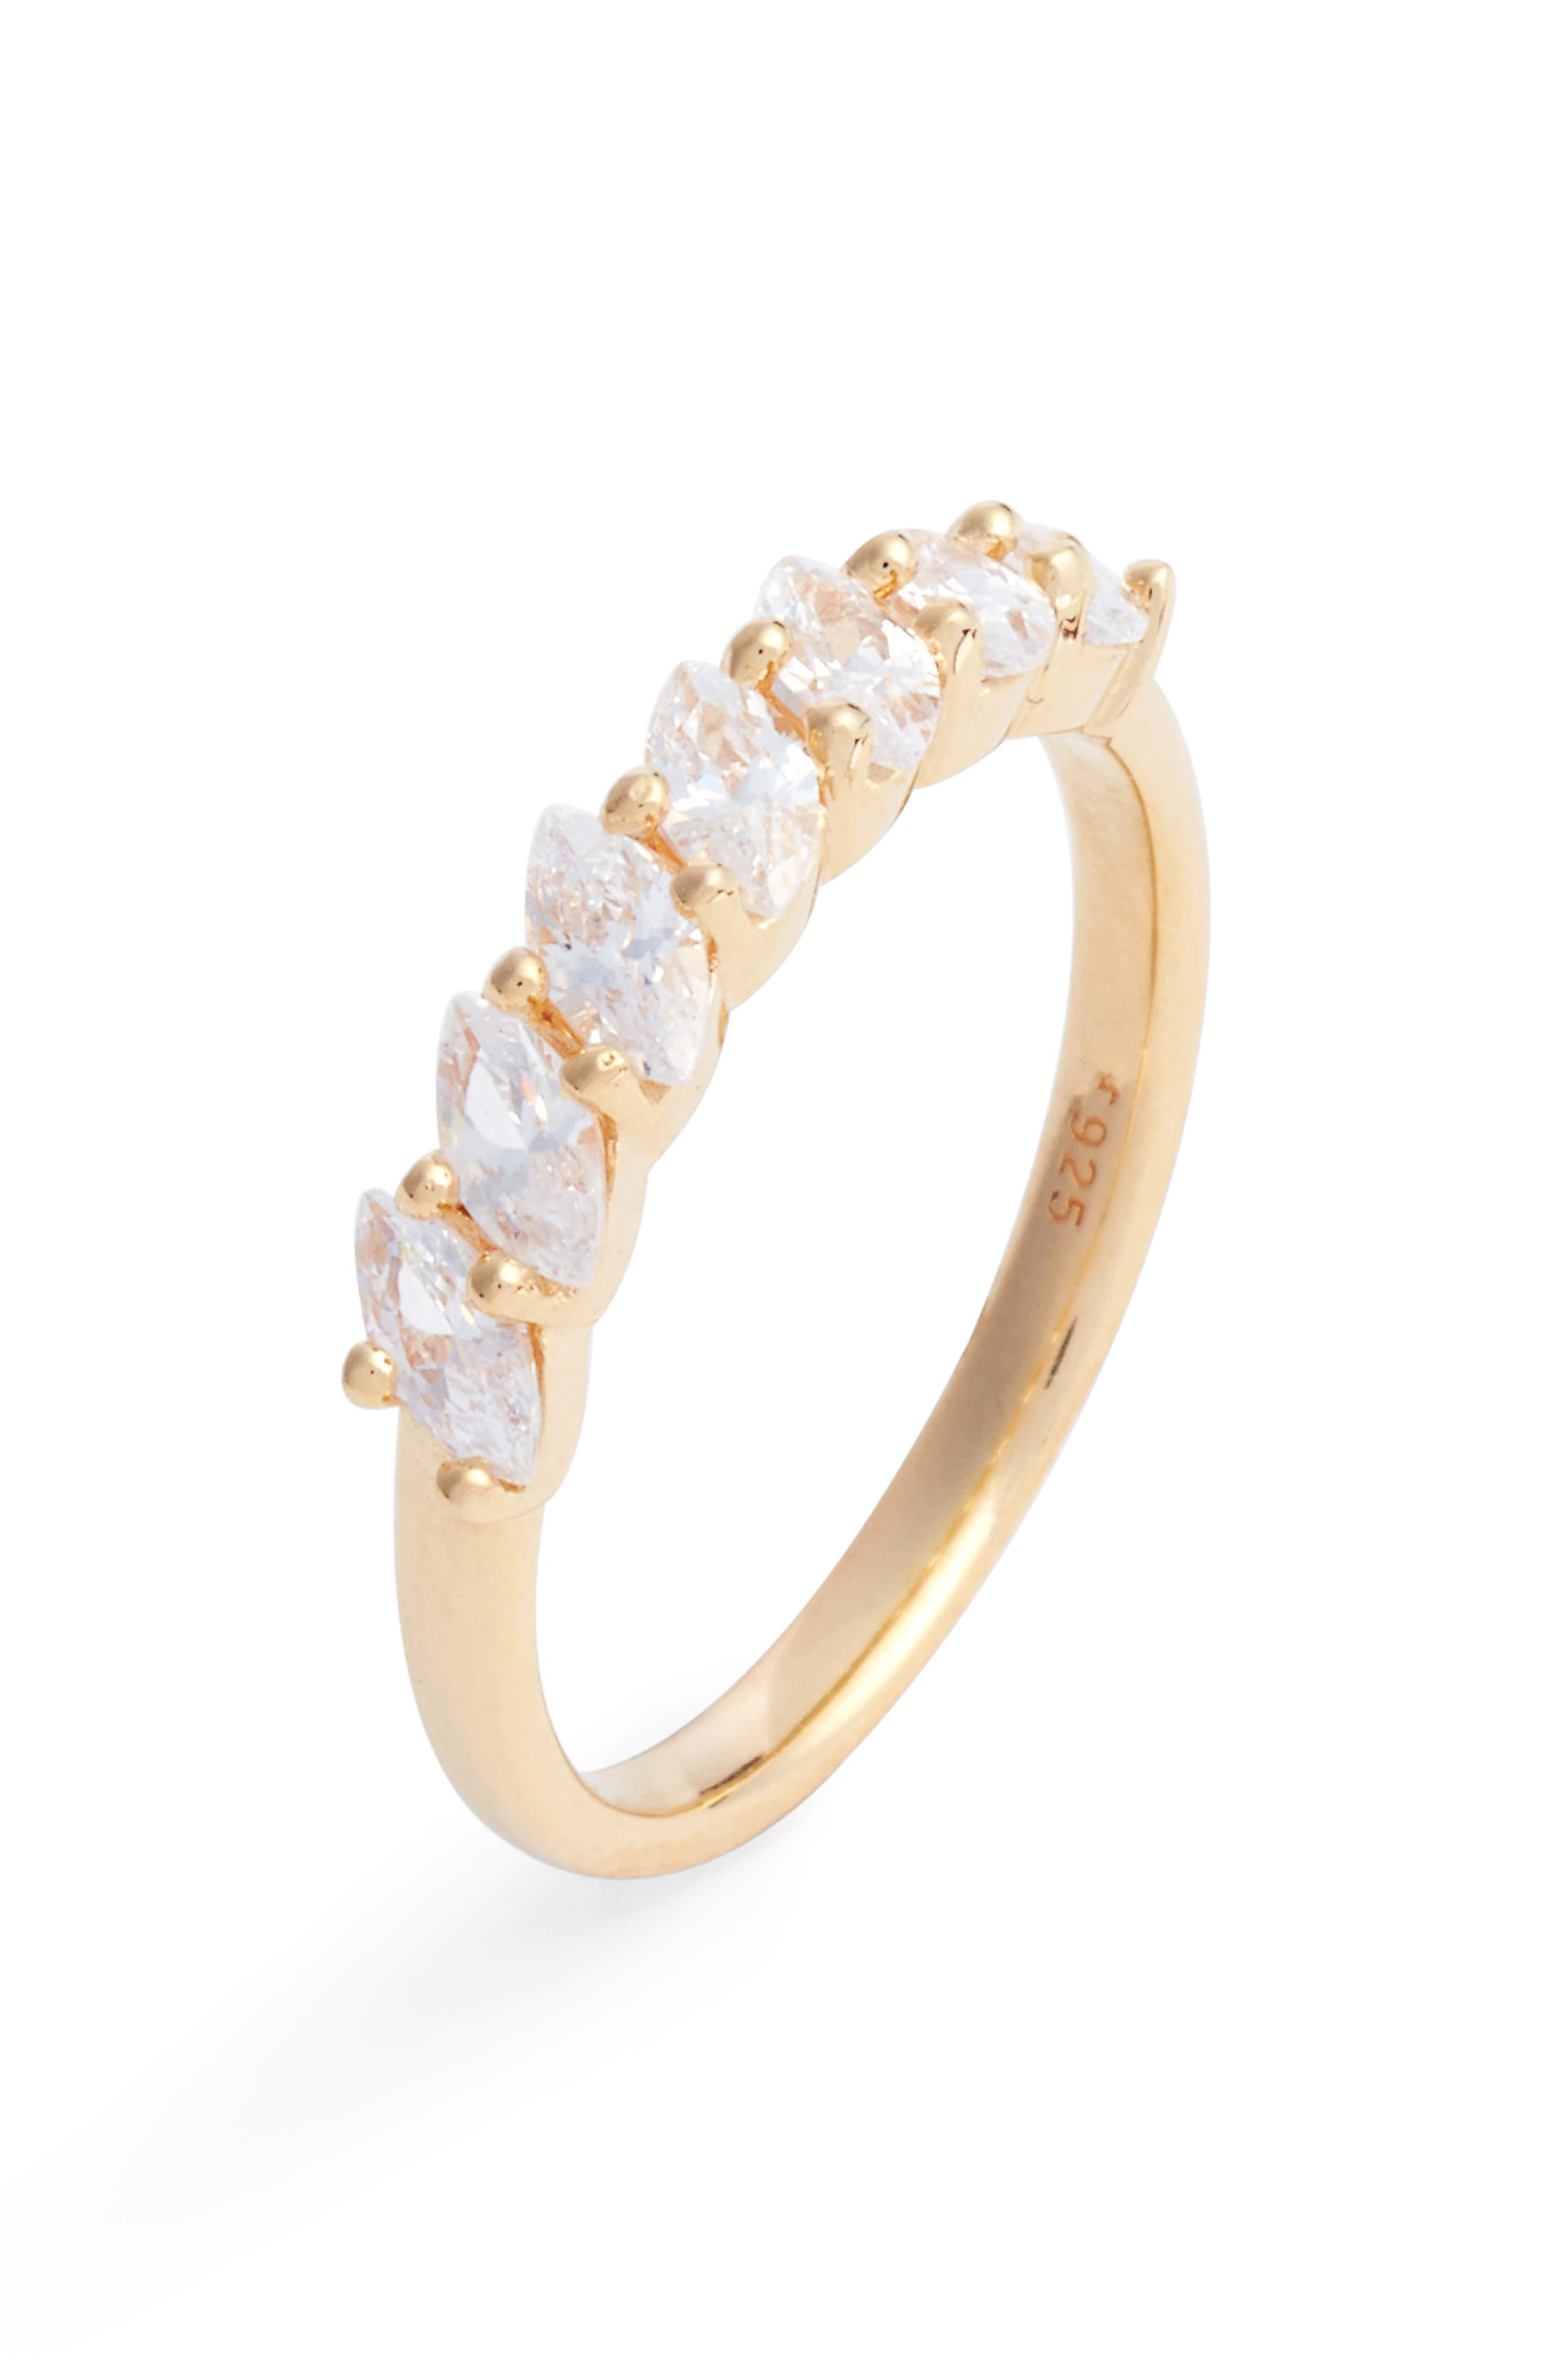 Main Image - Nordstrom Marquise Cubic Zirconia Ring